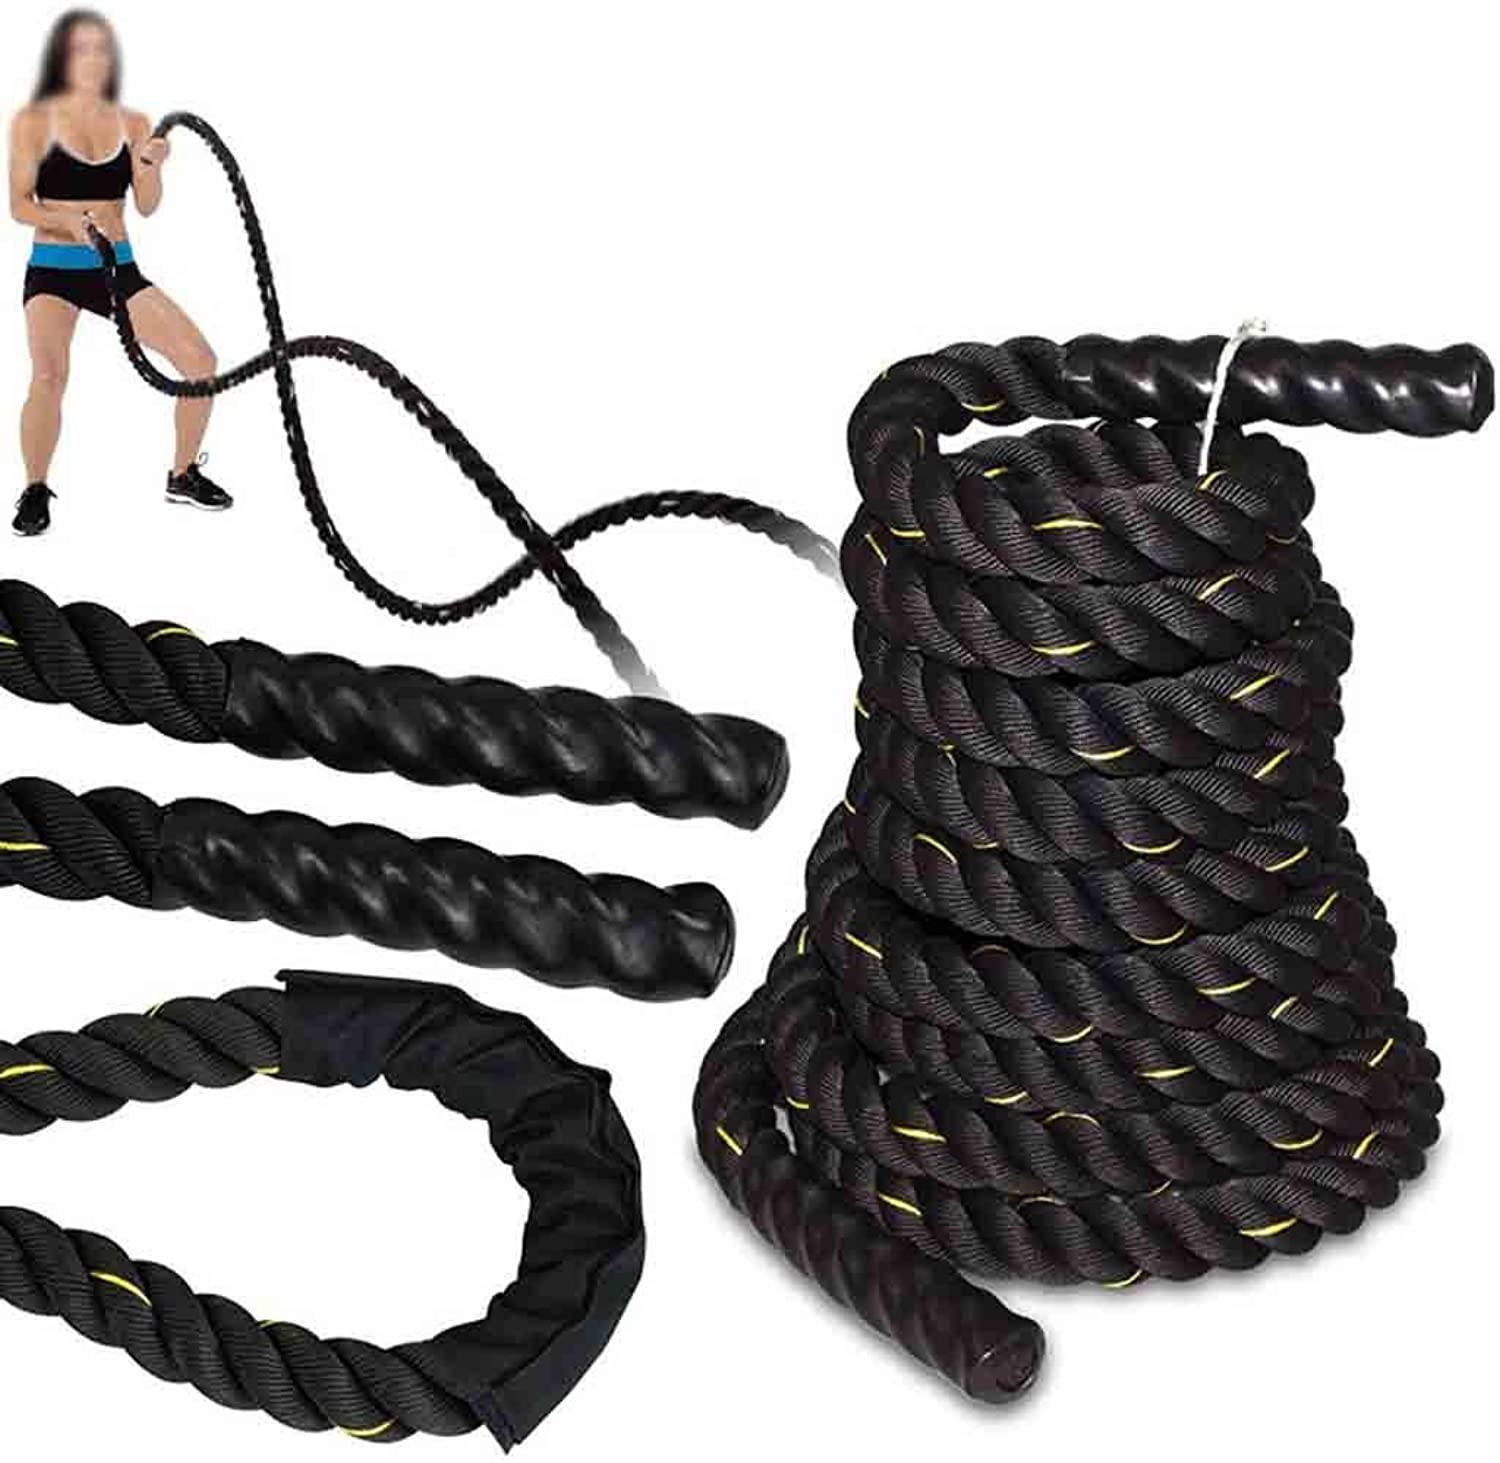 1.5  Diameter Exercise Training Battle Ropes (30' 40' 50' Length Available) Circumference Training Rope, Fitness Equipment for Home, Office, Professional Gyms